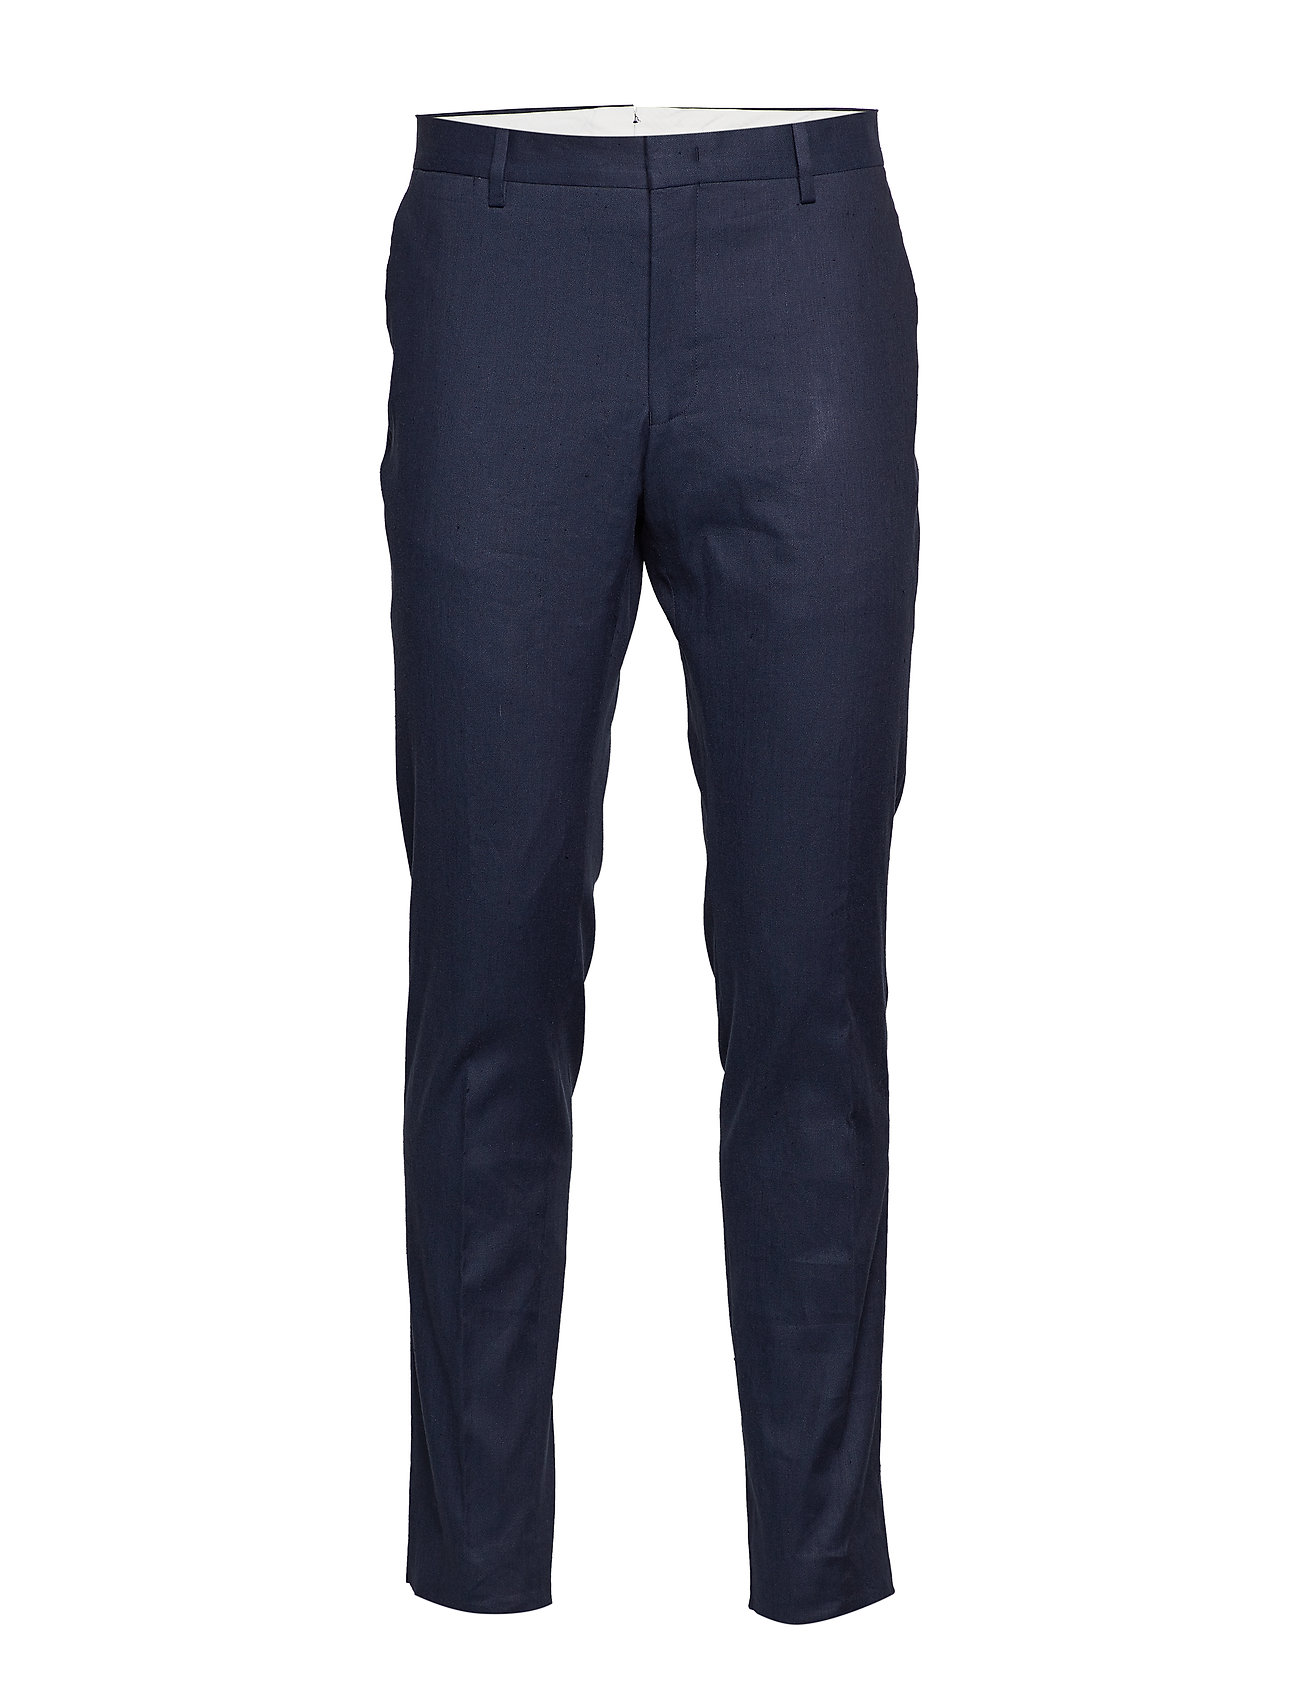 Gant G2. THE STRETCH LINEN SUIT PANT - MARINE